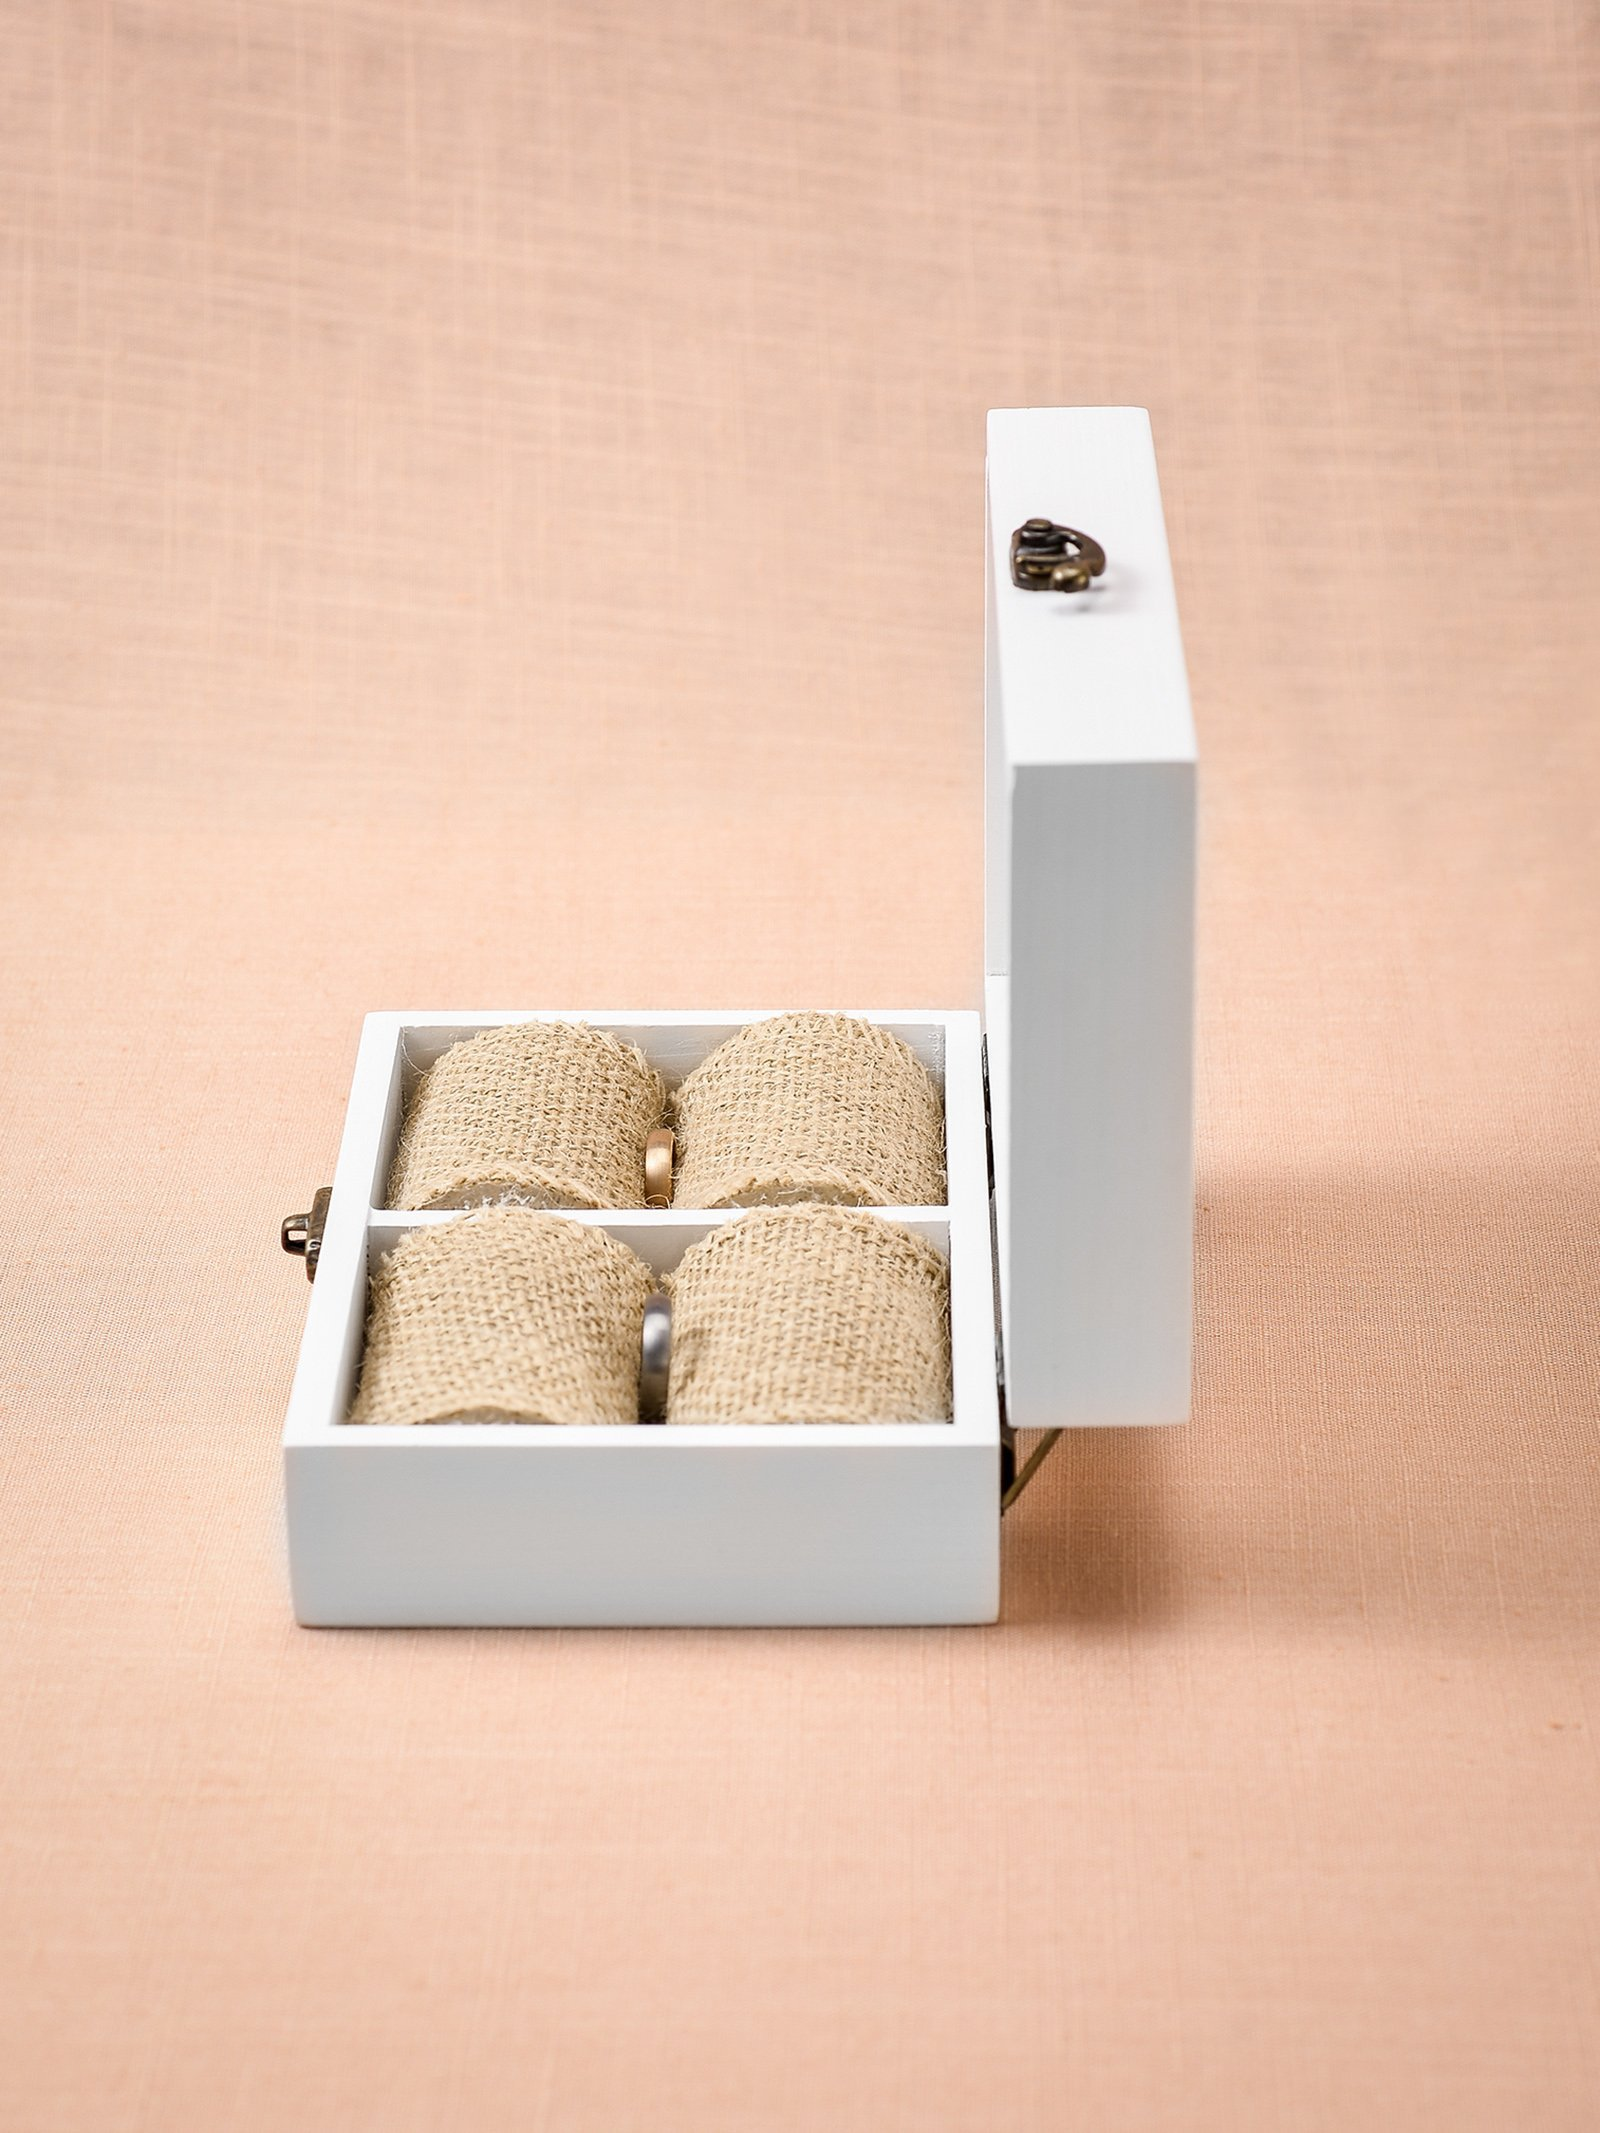 AW Rustic Wood Wedding Ring Bearer Box Jewelry Box for Wedding Ceremony by AWEI (Image #4)